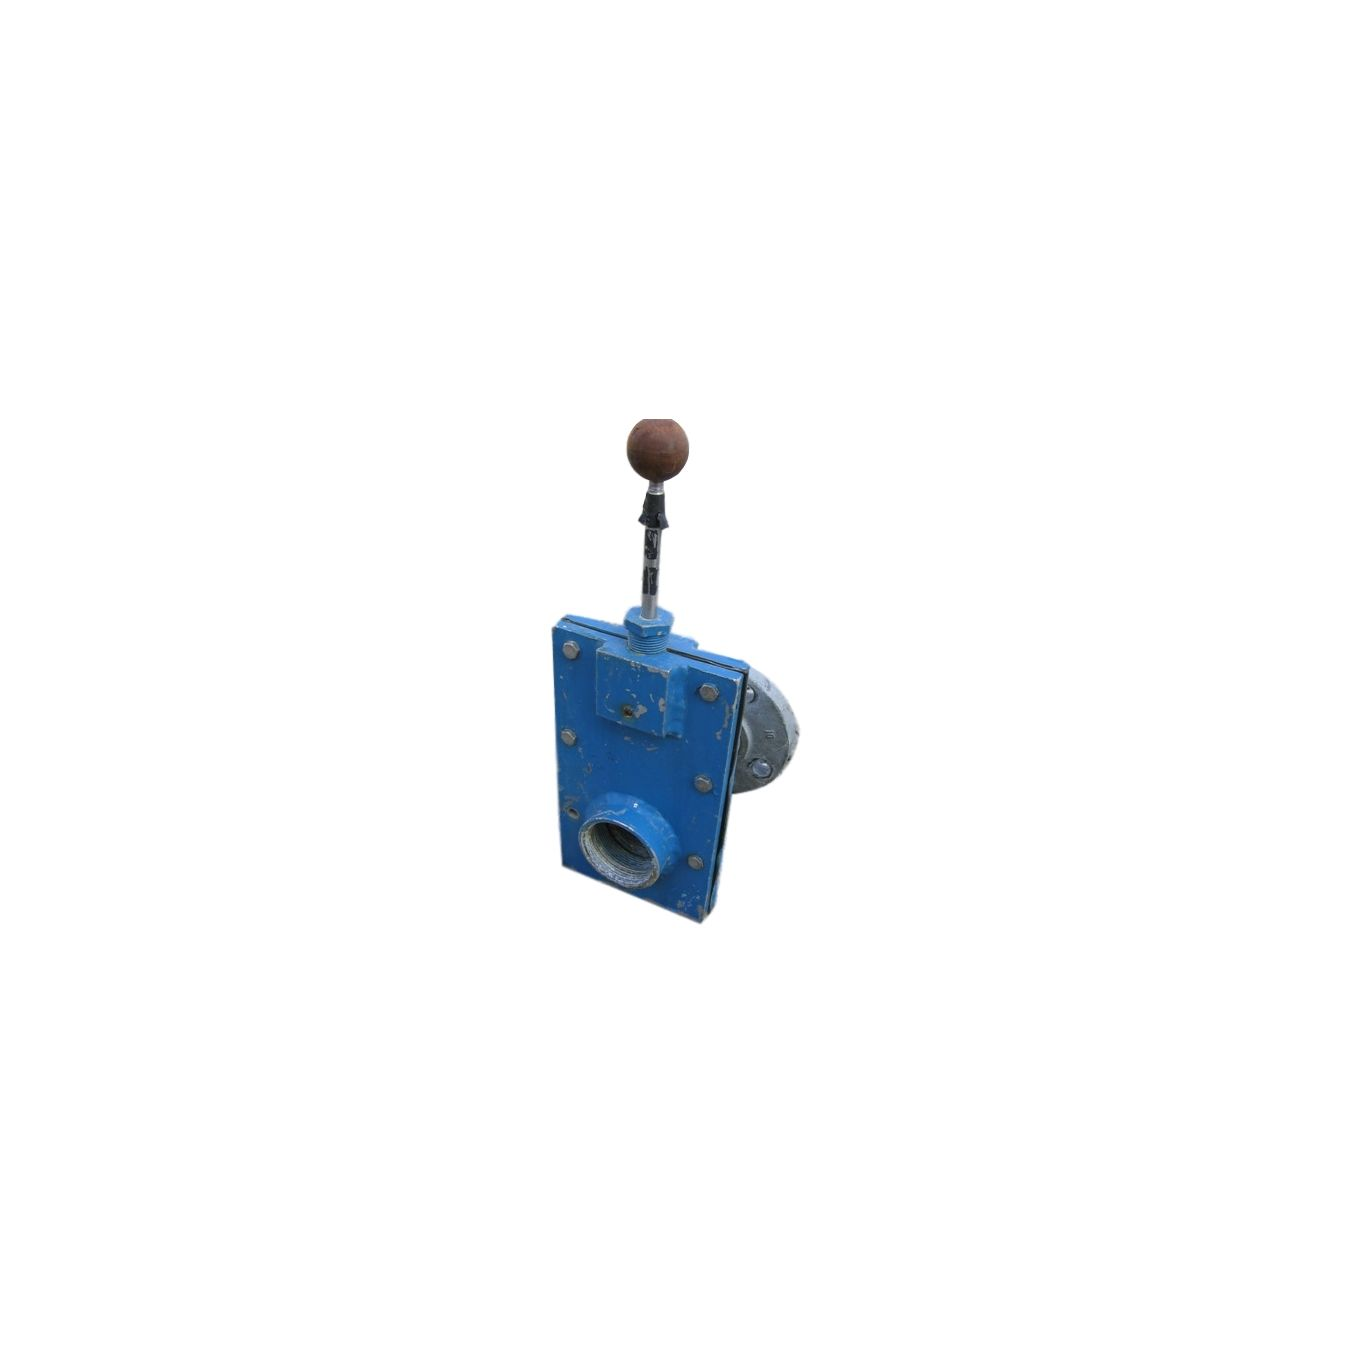 2 Quot Manual Knife Gate Valve Valves